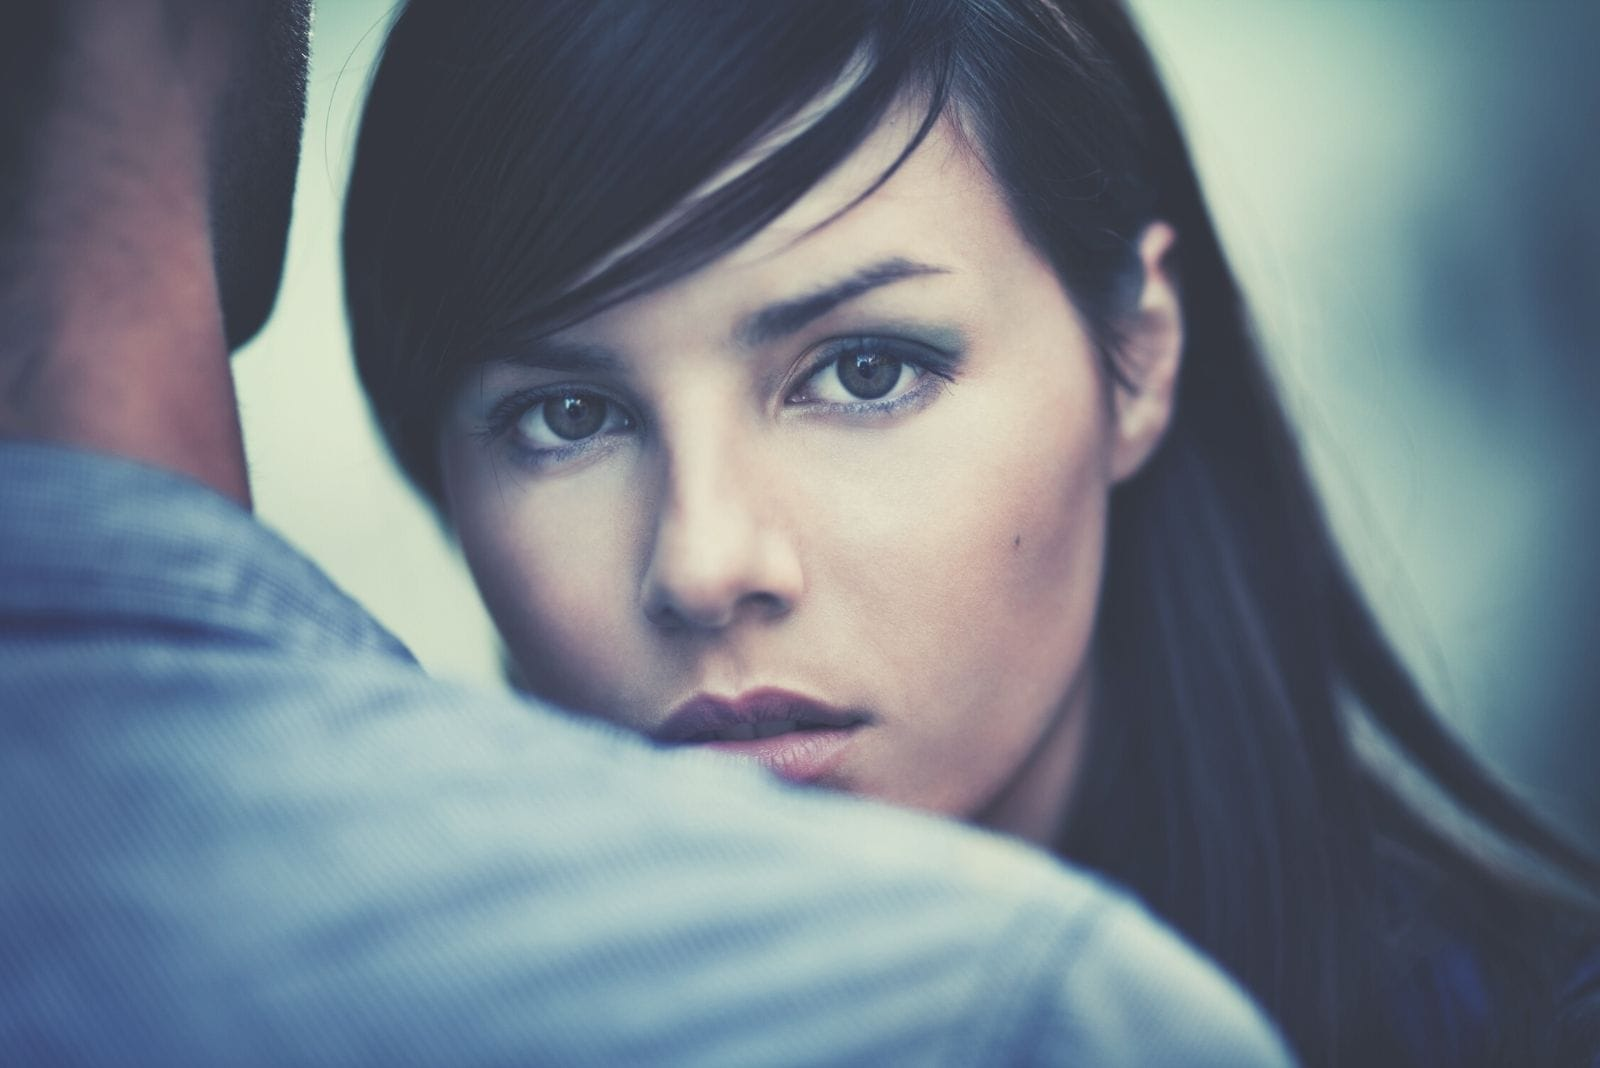 young pensive woman staring at the camera over a man's shoulder